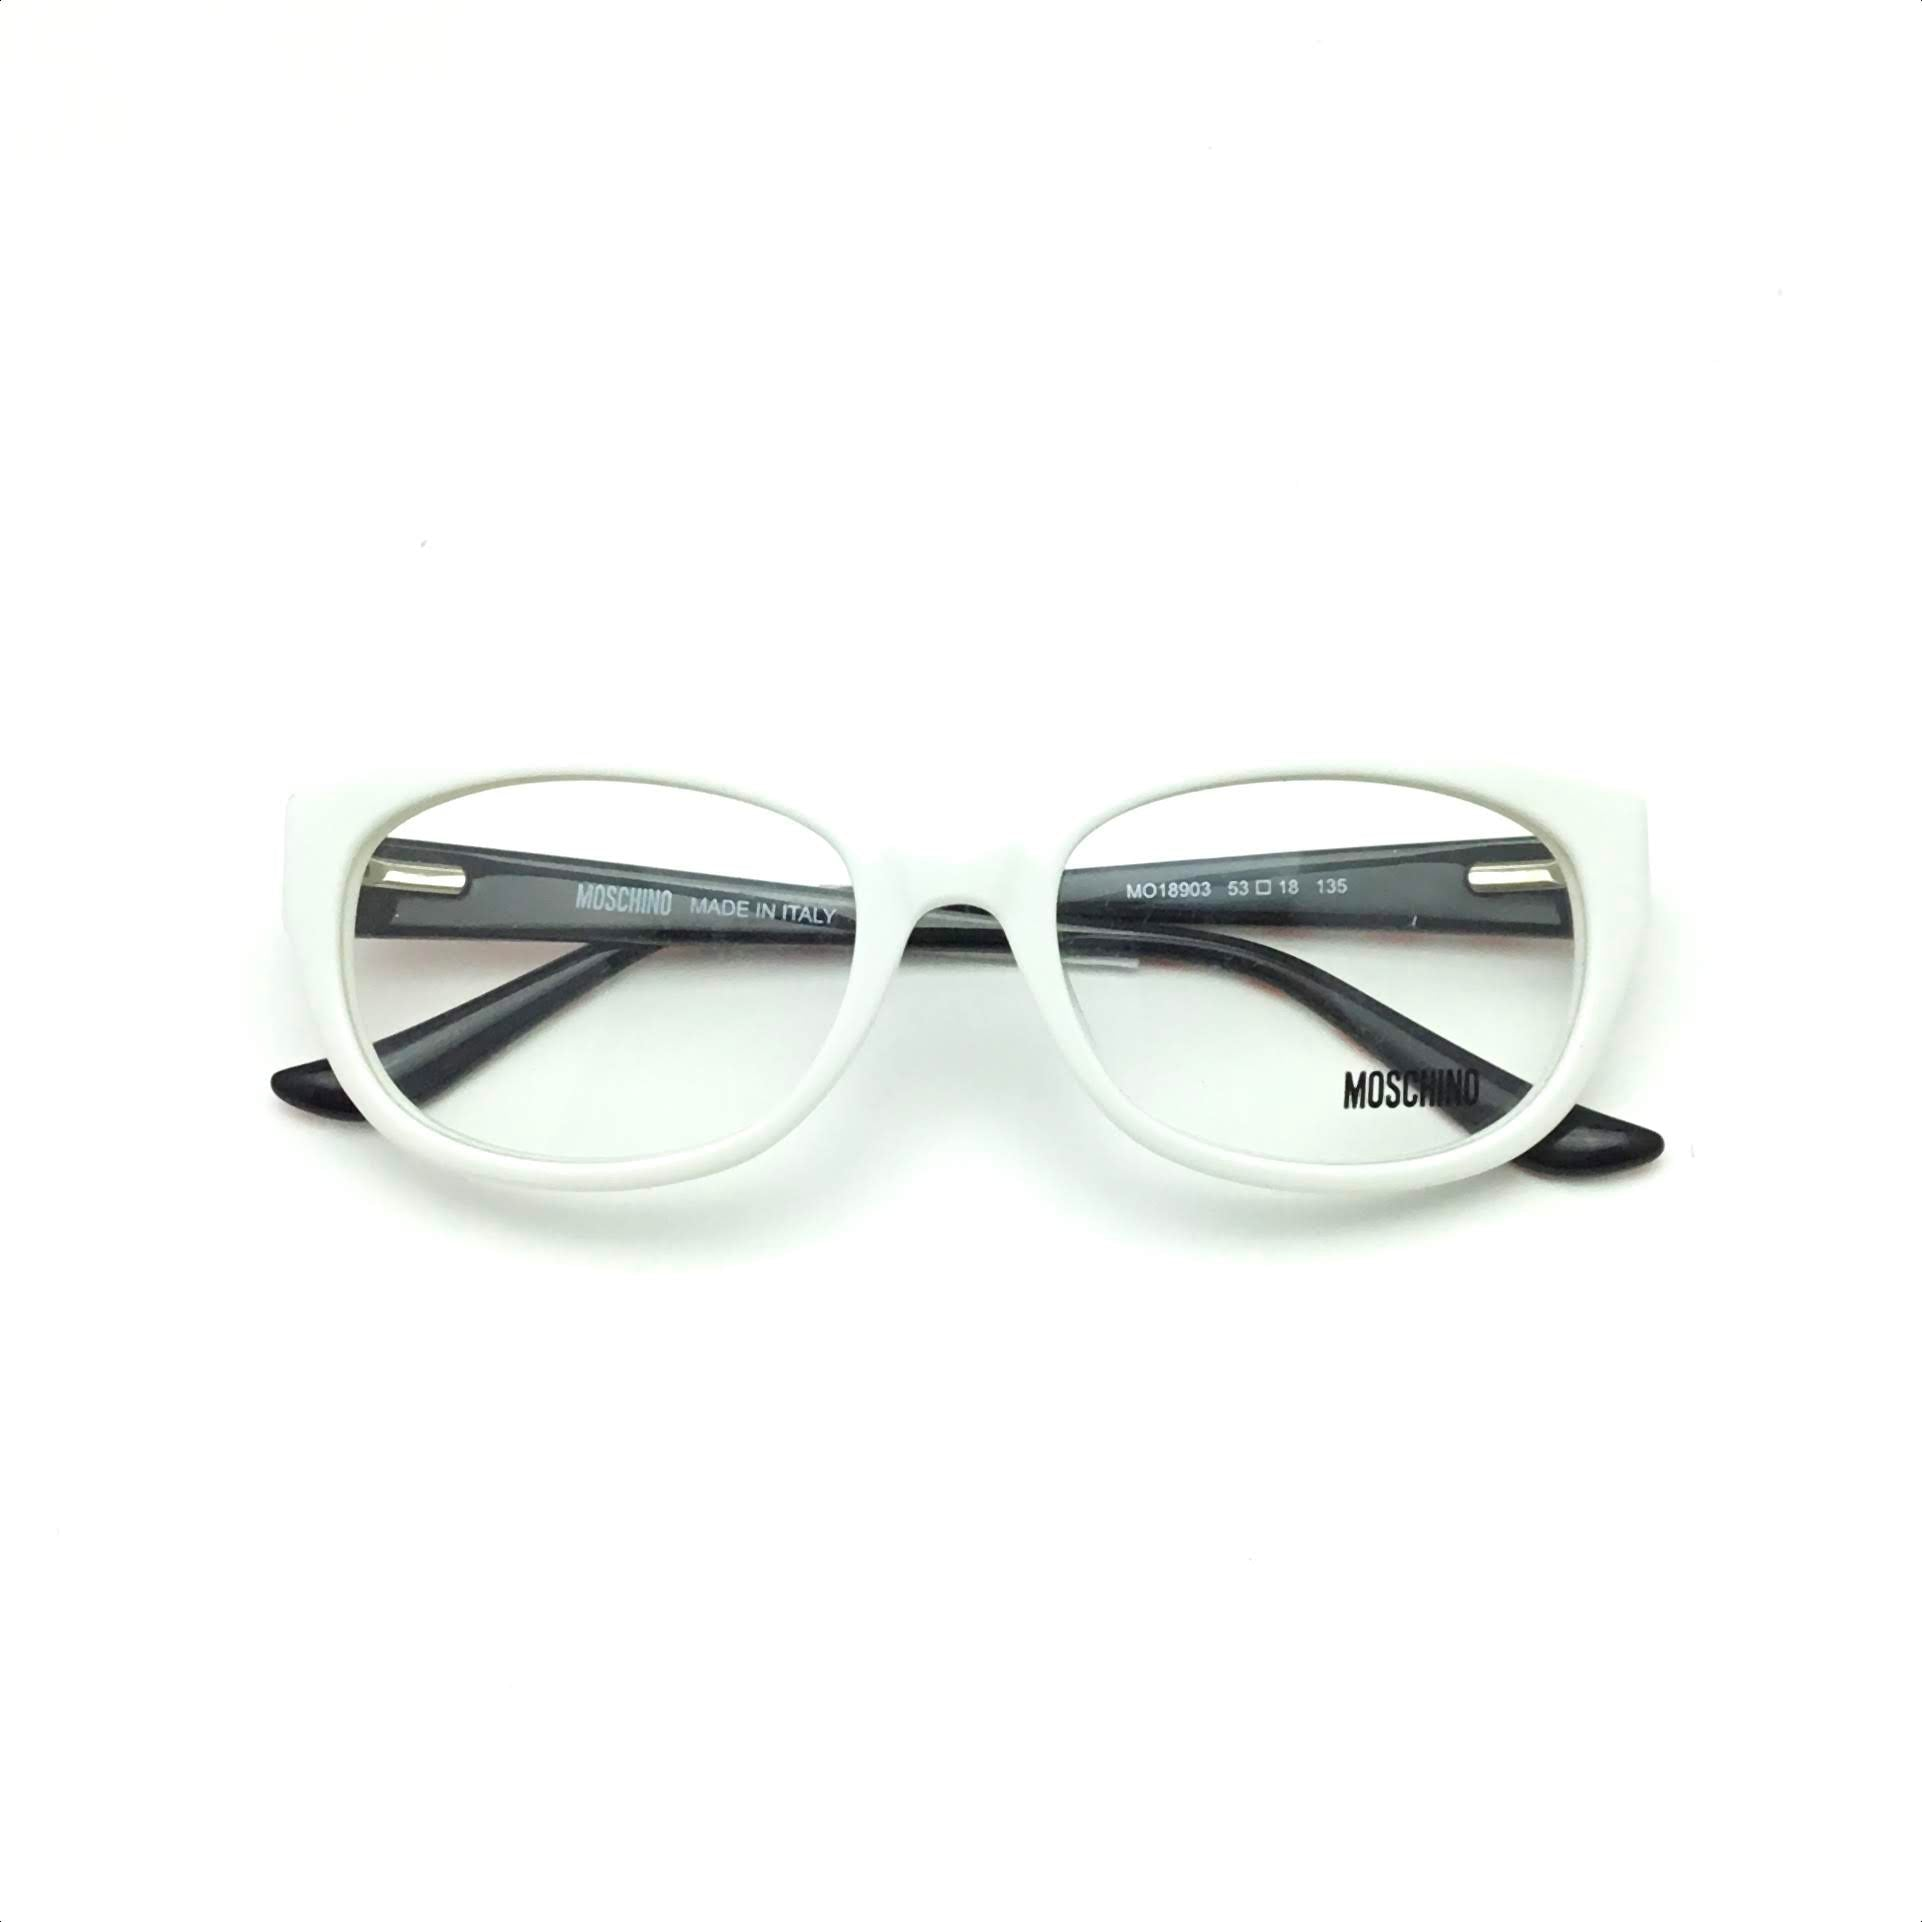 Moschino Glasses $109 ITALY D5